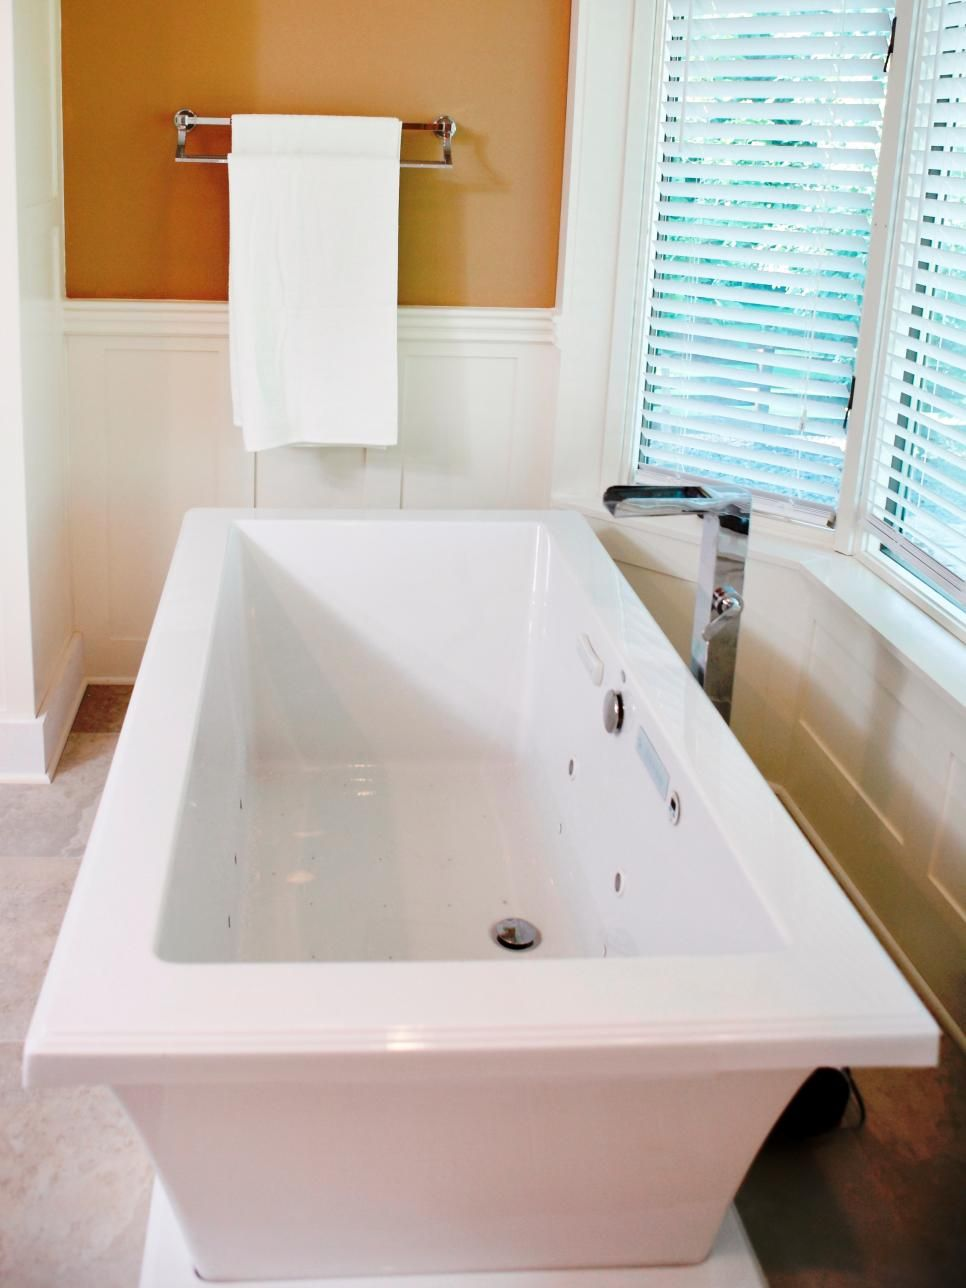 #TestimonialTuesday : We are in with this amazing bathroom ...